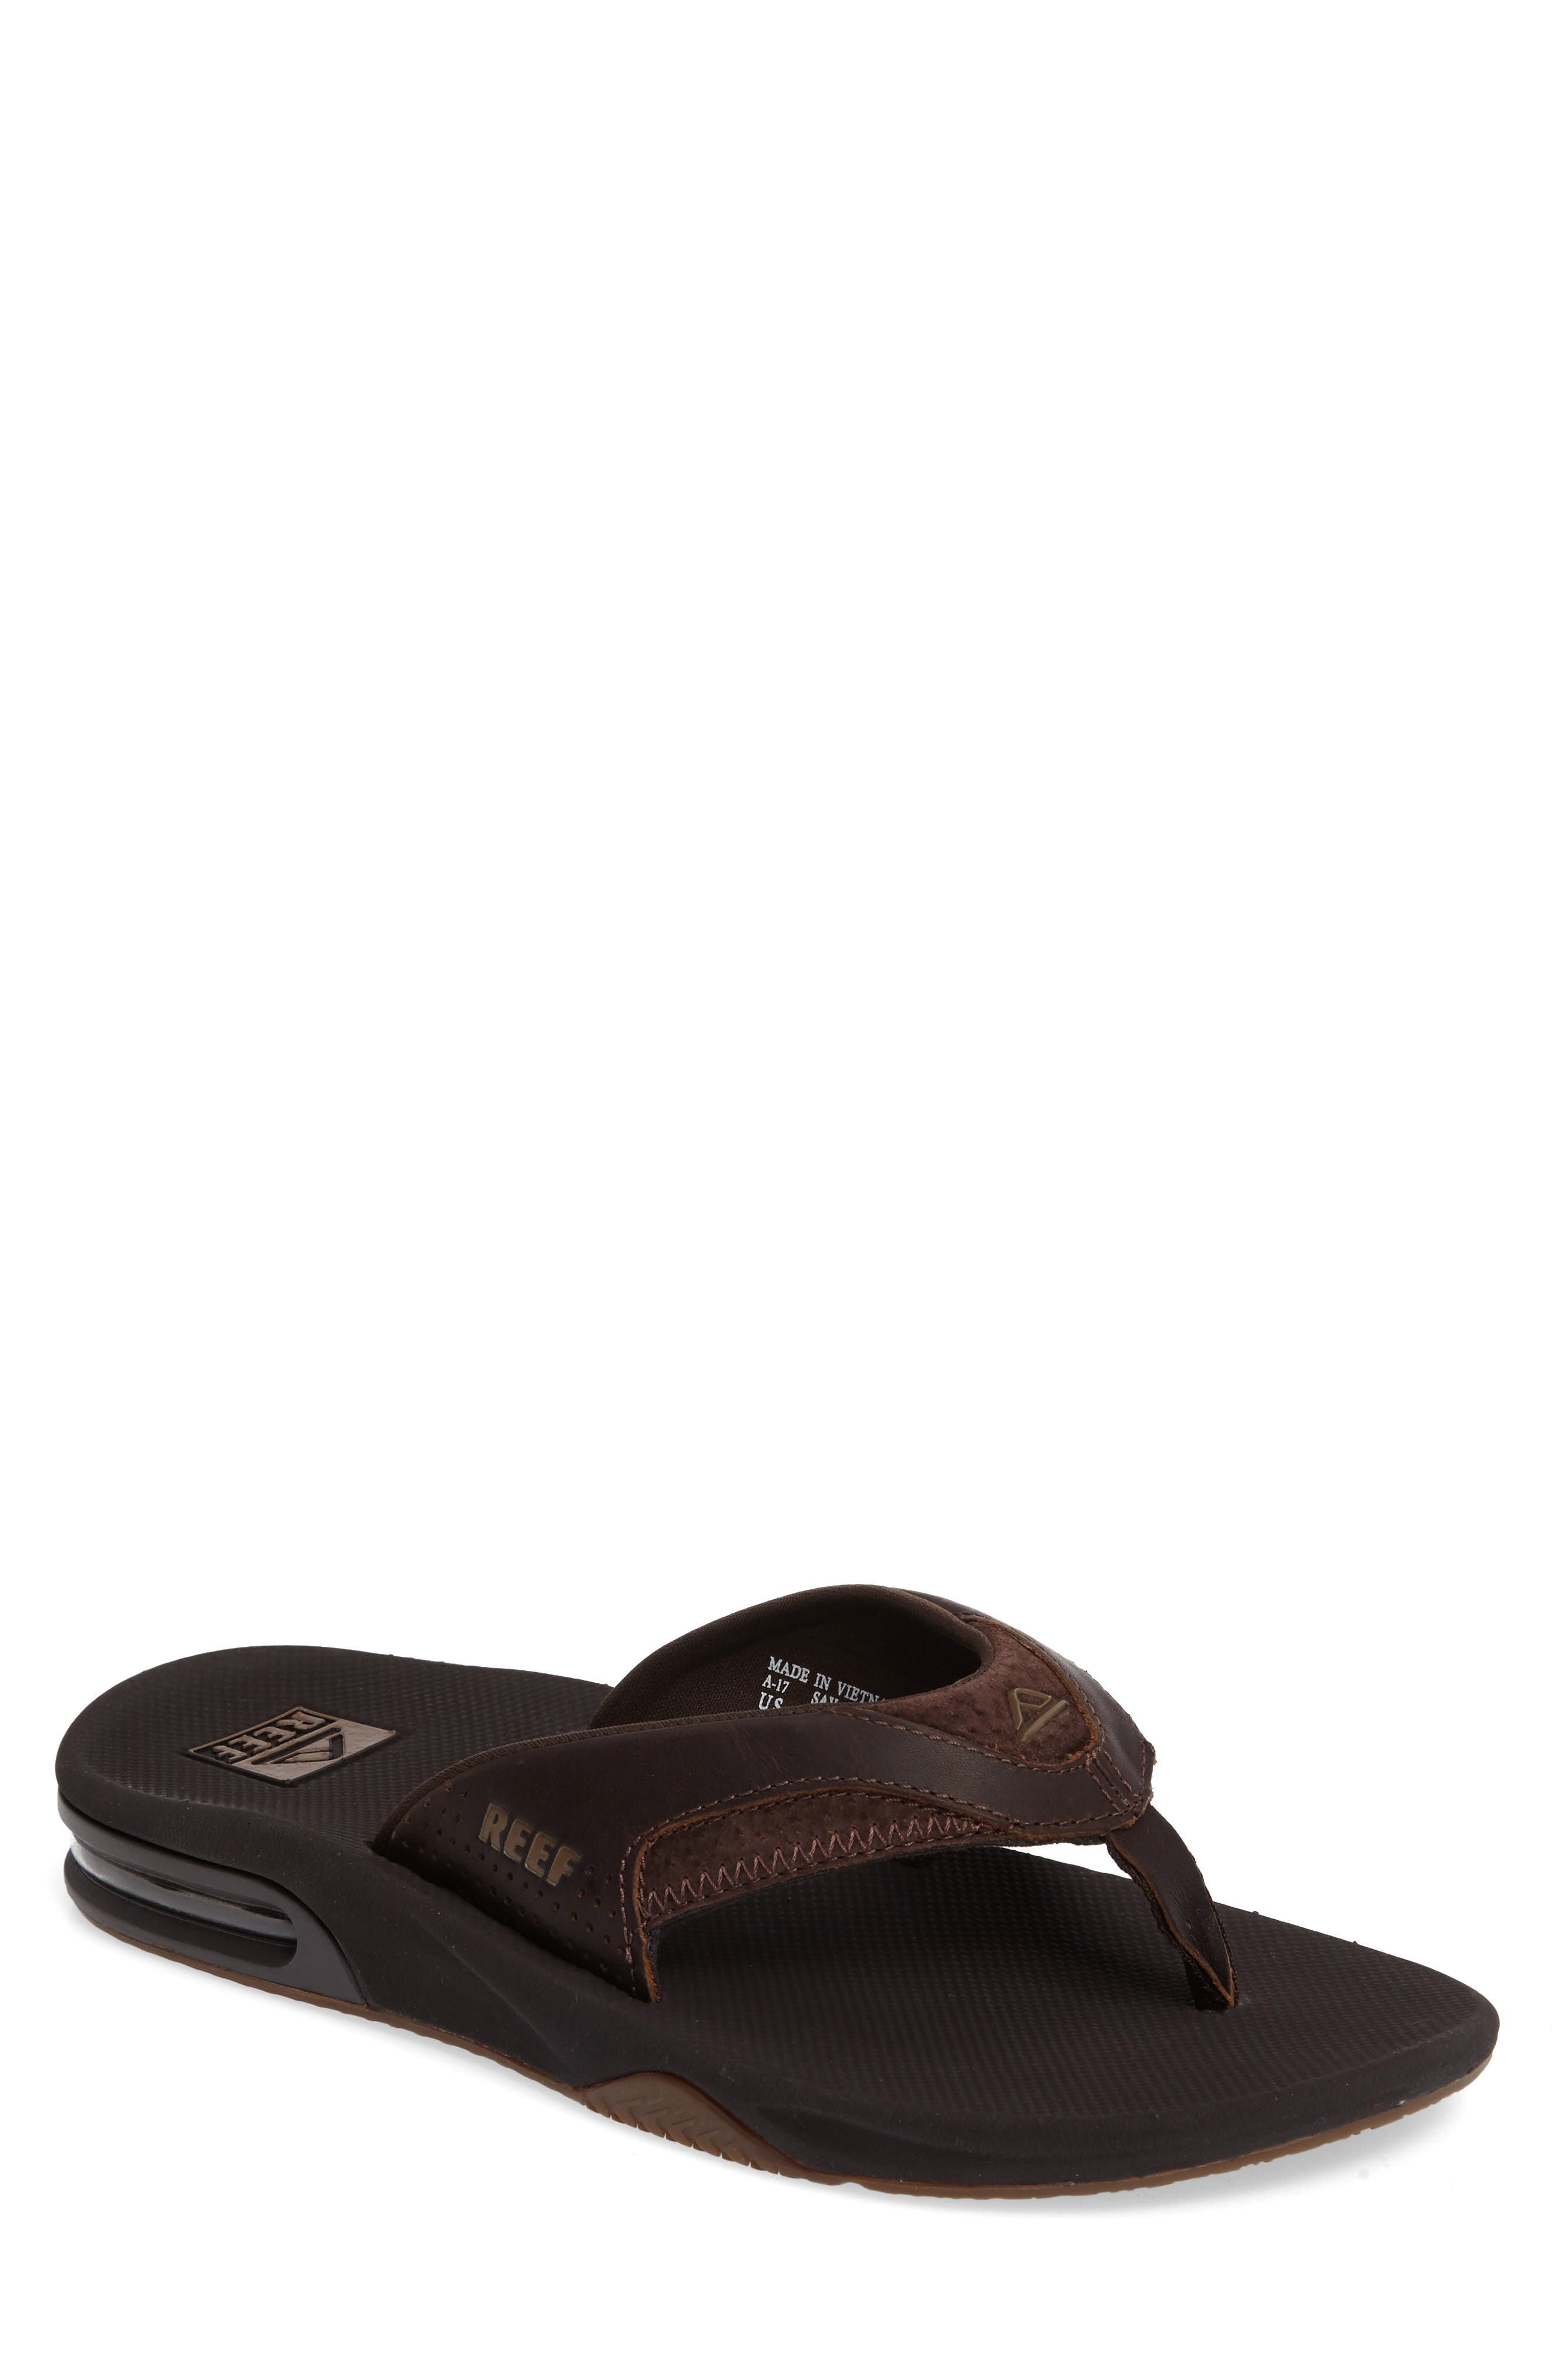 REEF, 'Fanning Leather' Flip Flop, Main thumbnail 1, color, BROWN LEATHER